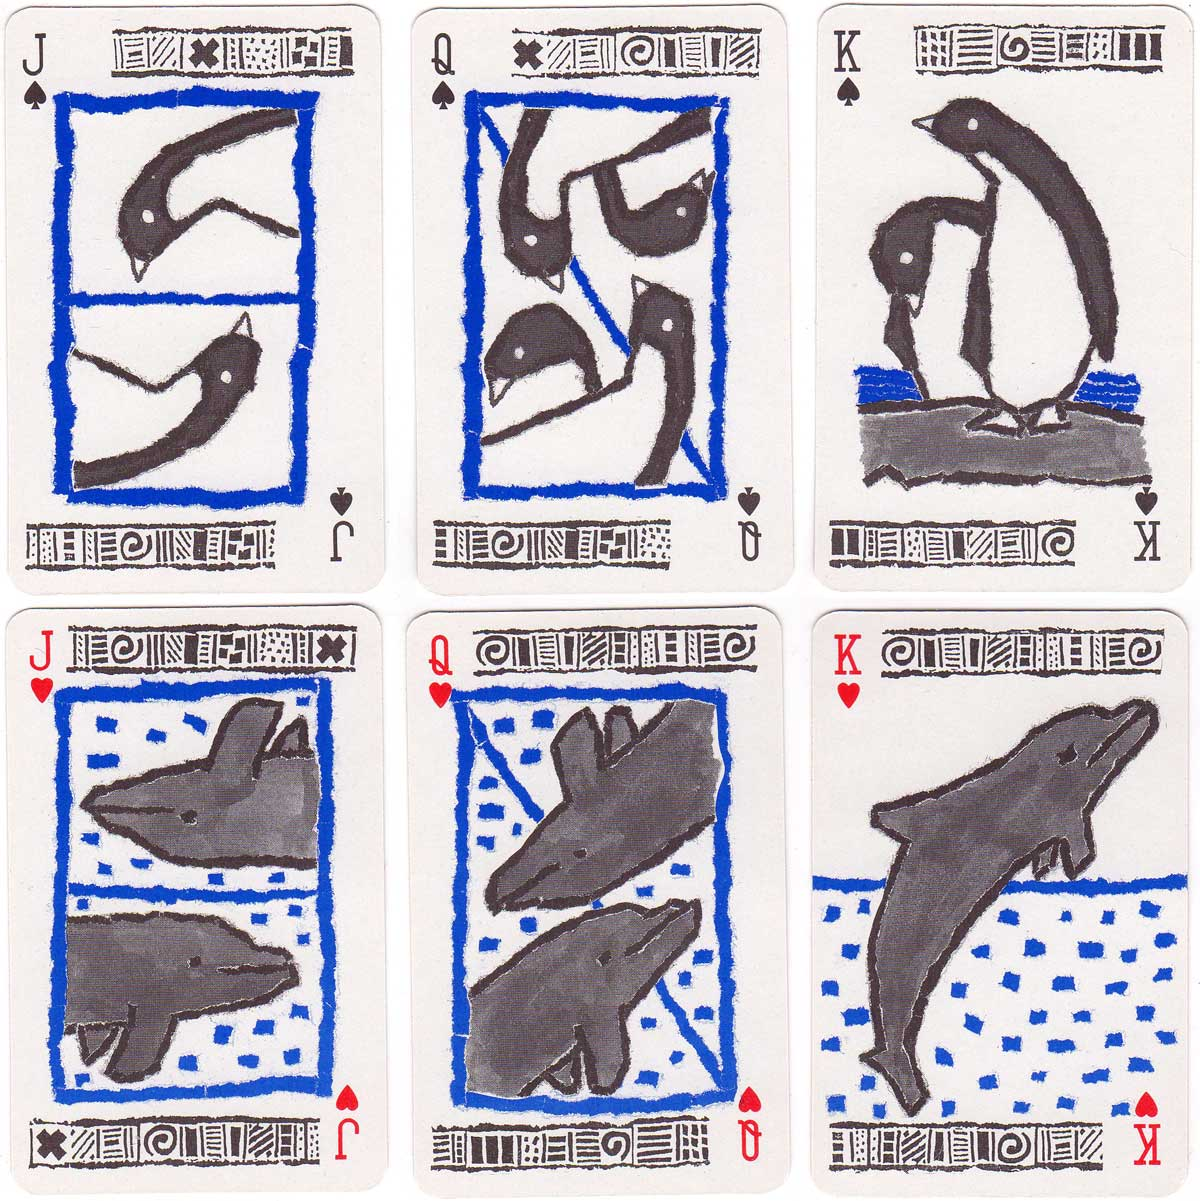 Campaign deck for Greenpeace with naive drawings of penguins, seals, whales and dolphins, c.2018